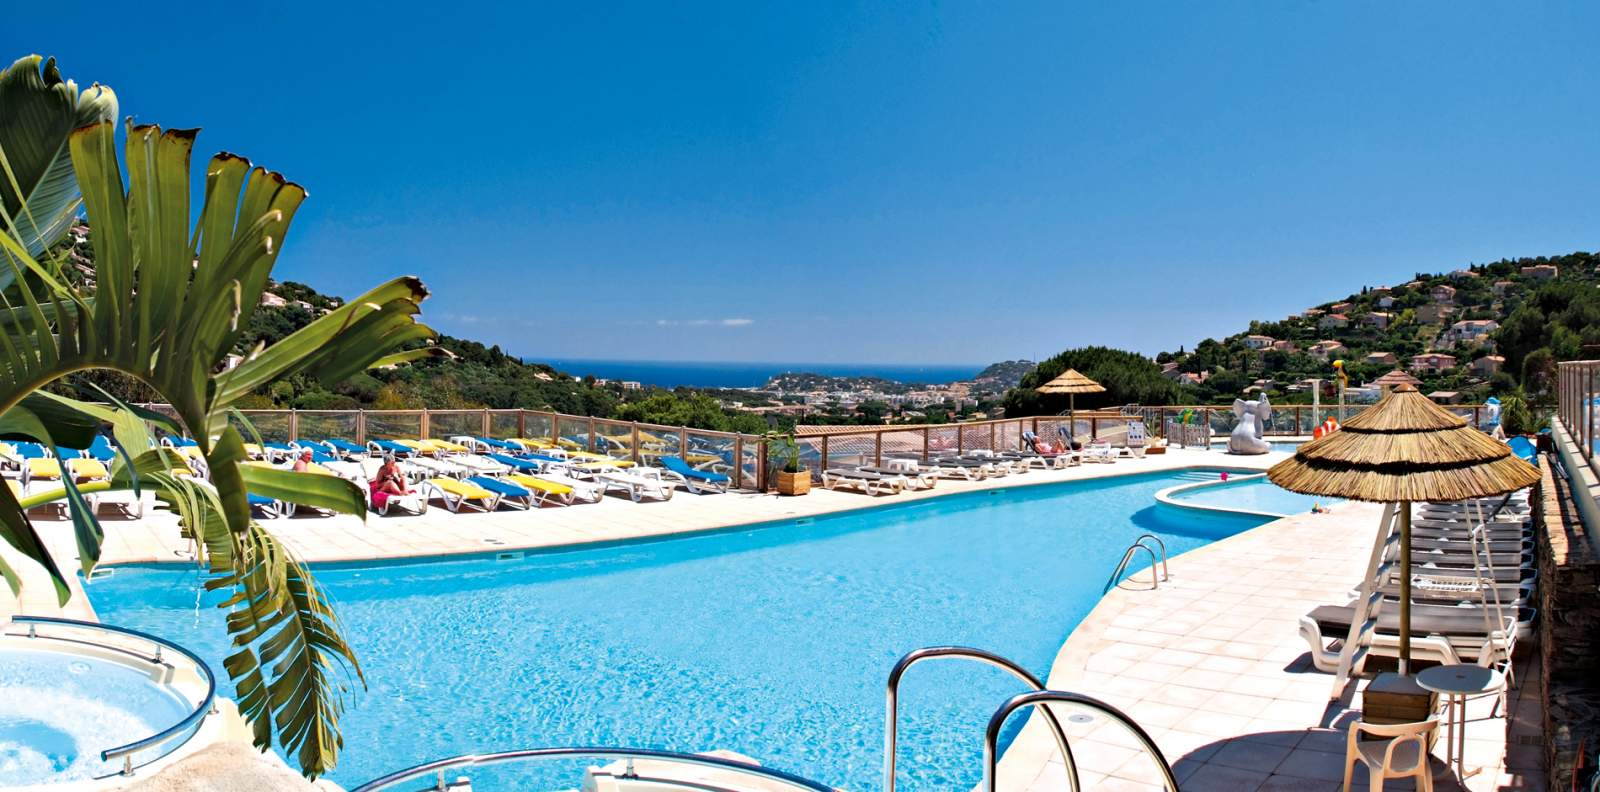 camping avec piscine chauffee a cavalaire